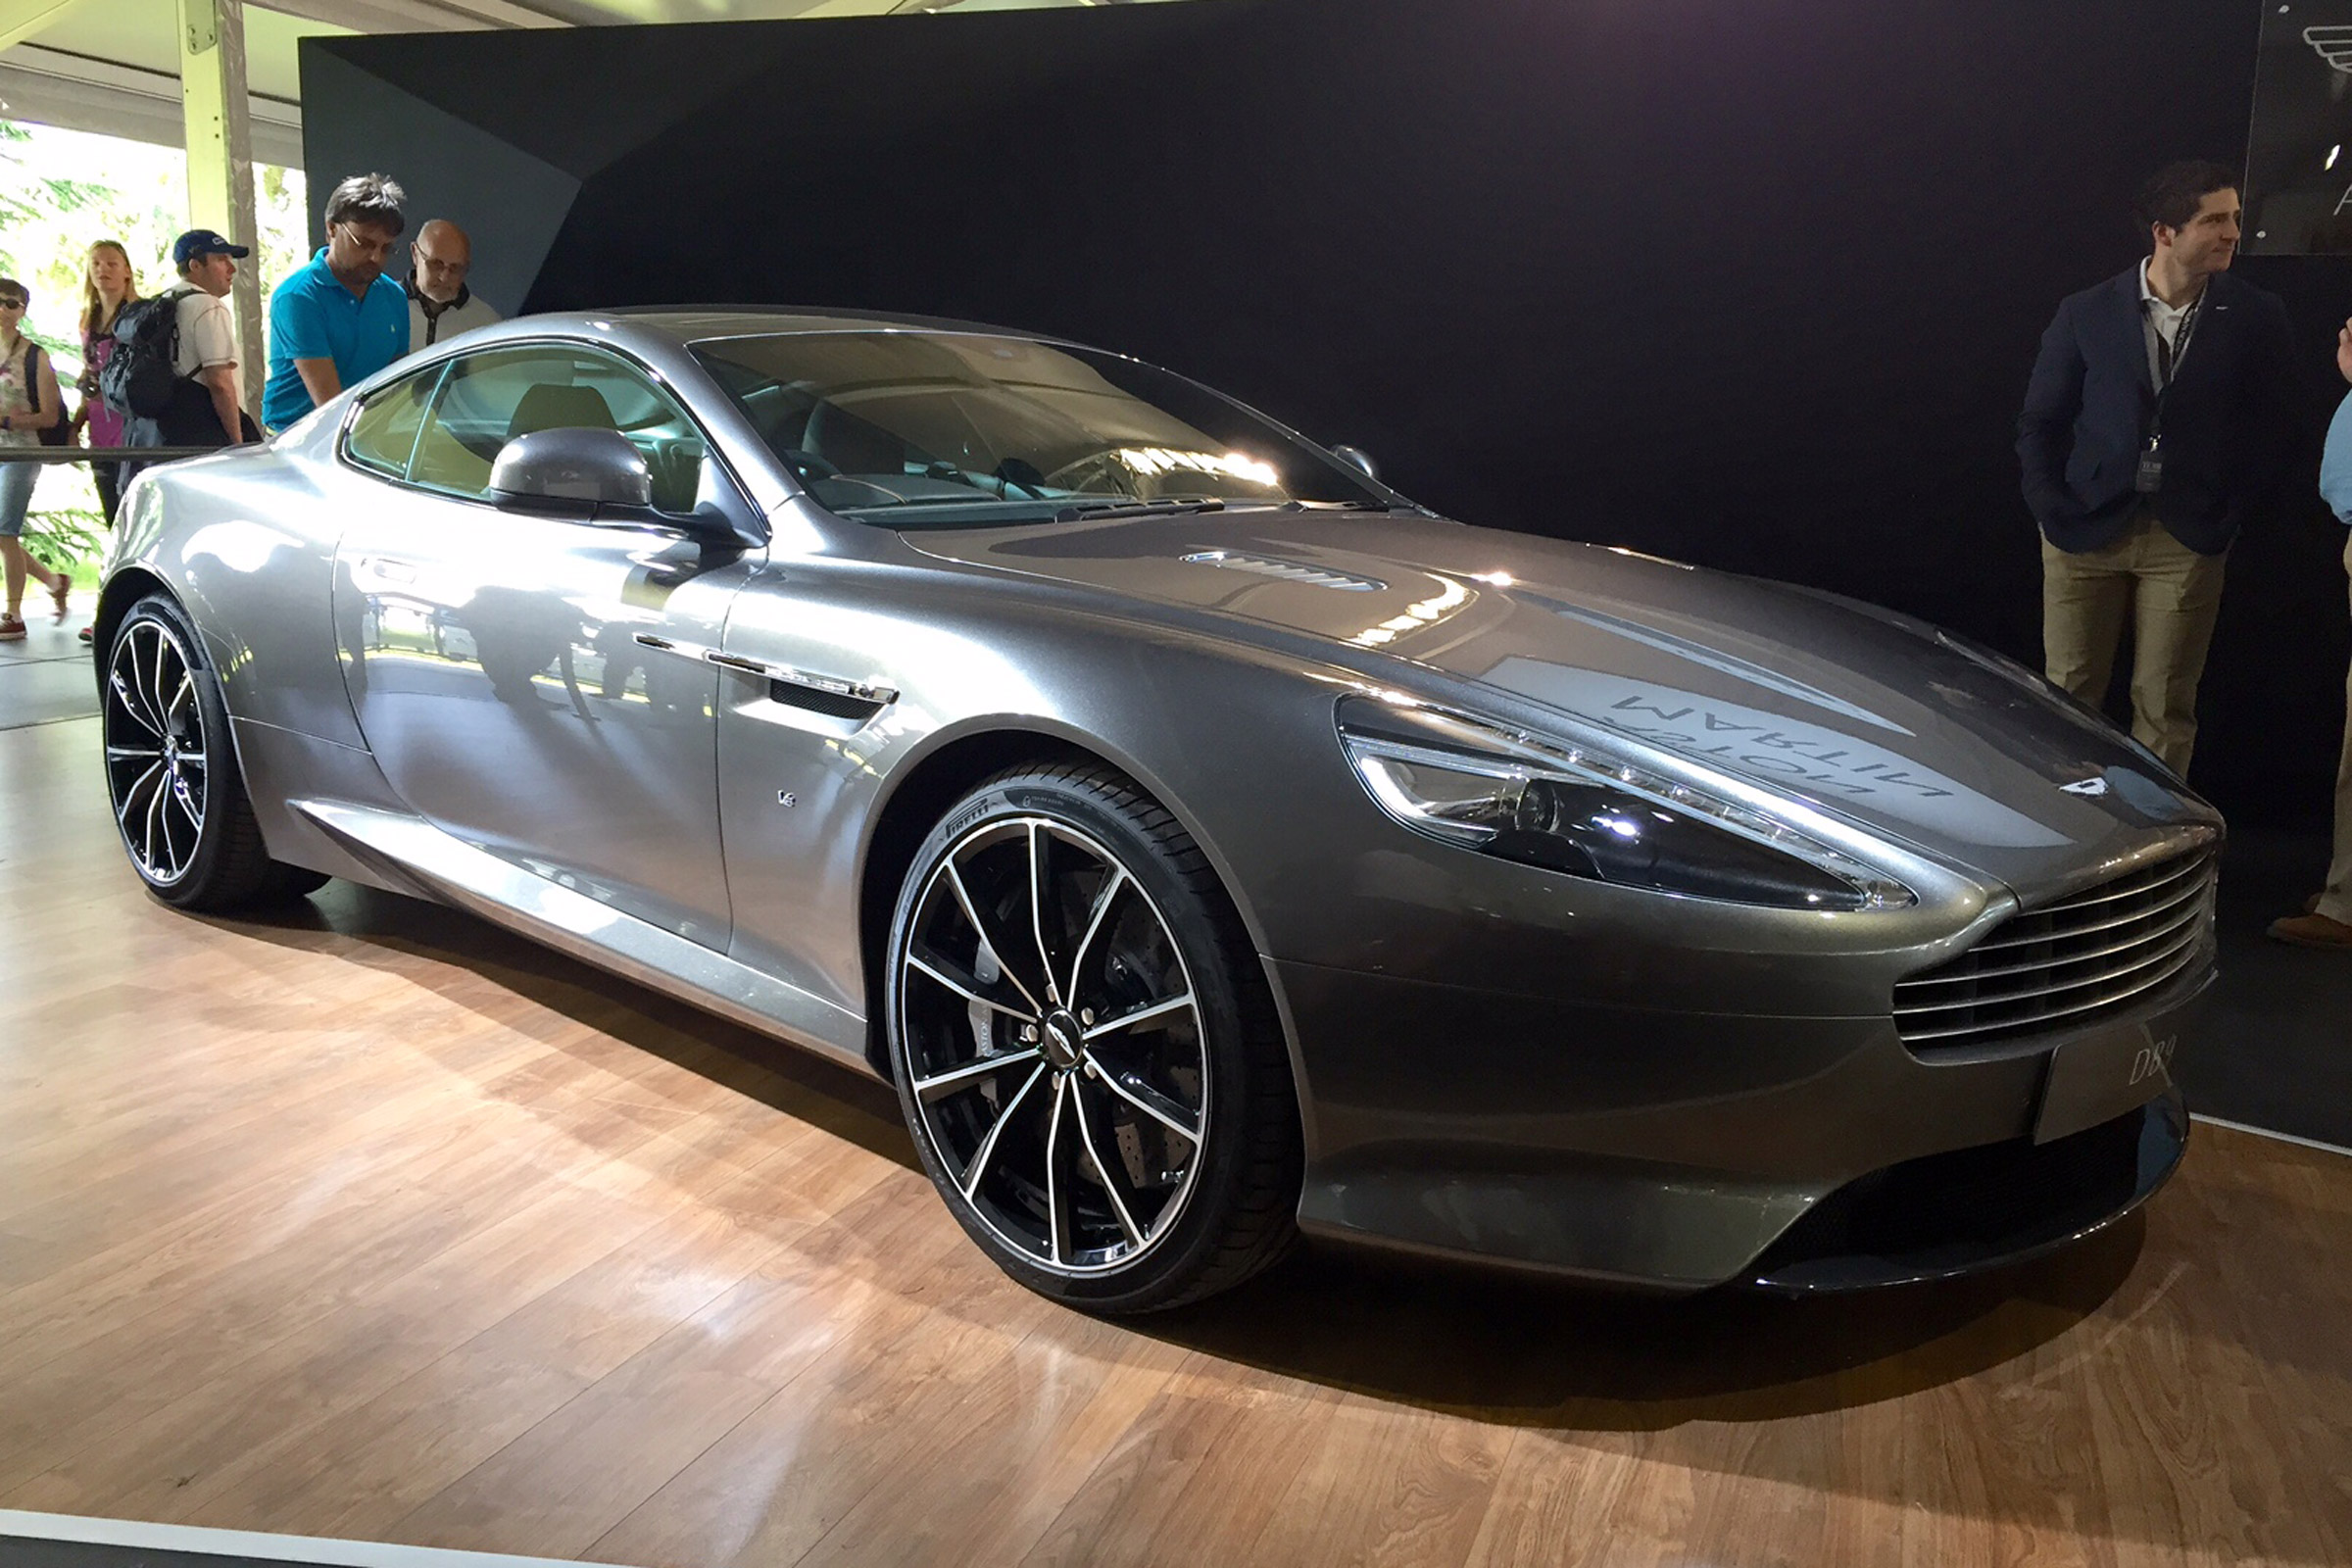 Special Edition Aston Martin Db9 Gt Gets Extra Power Auto Express